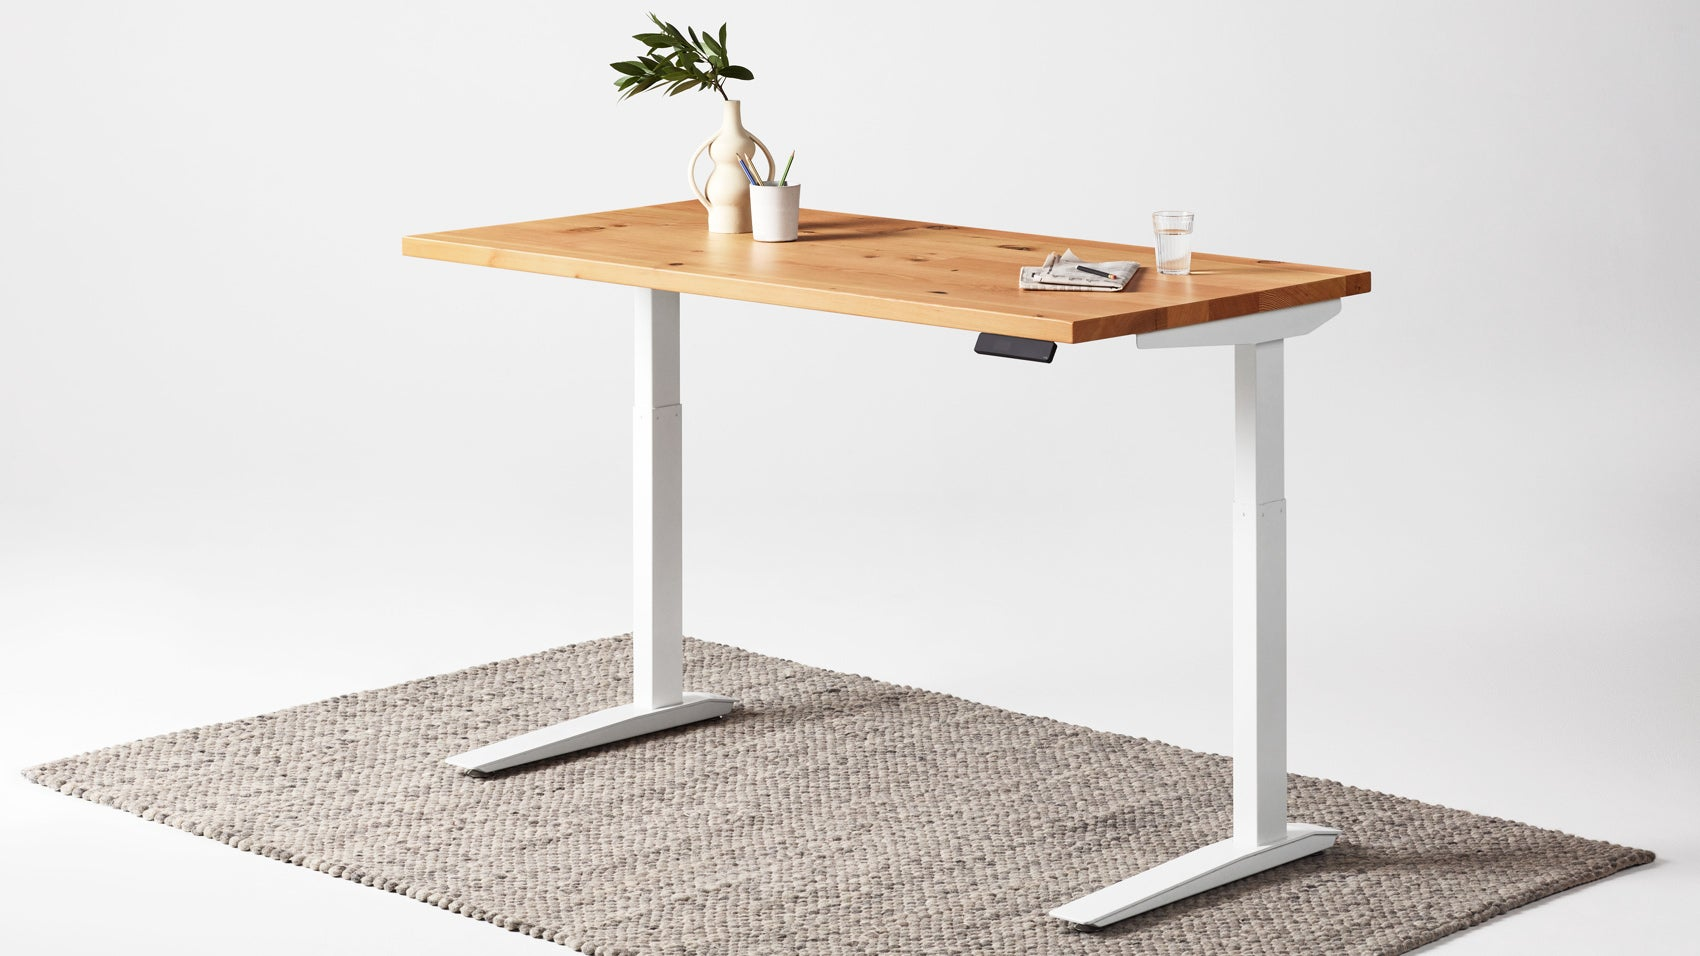 Fully Jarvis Standing desk with hardwood top on a rug against a white backdrop